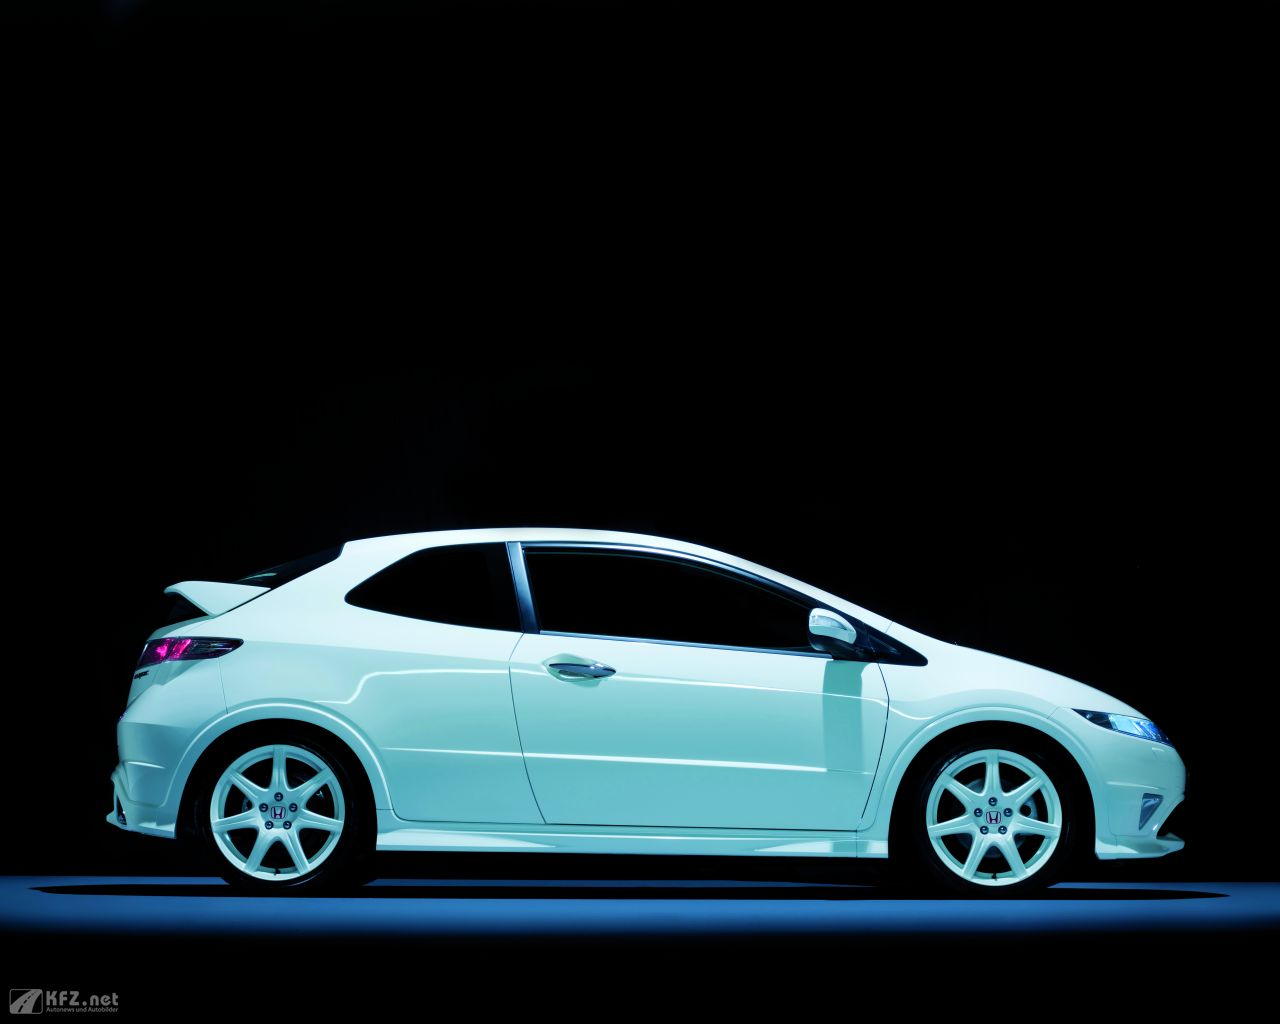 honda-civic-1280x1024-131